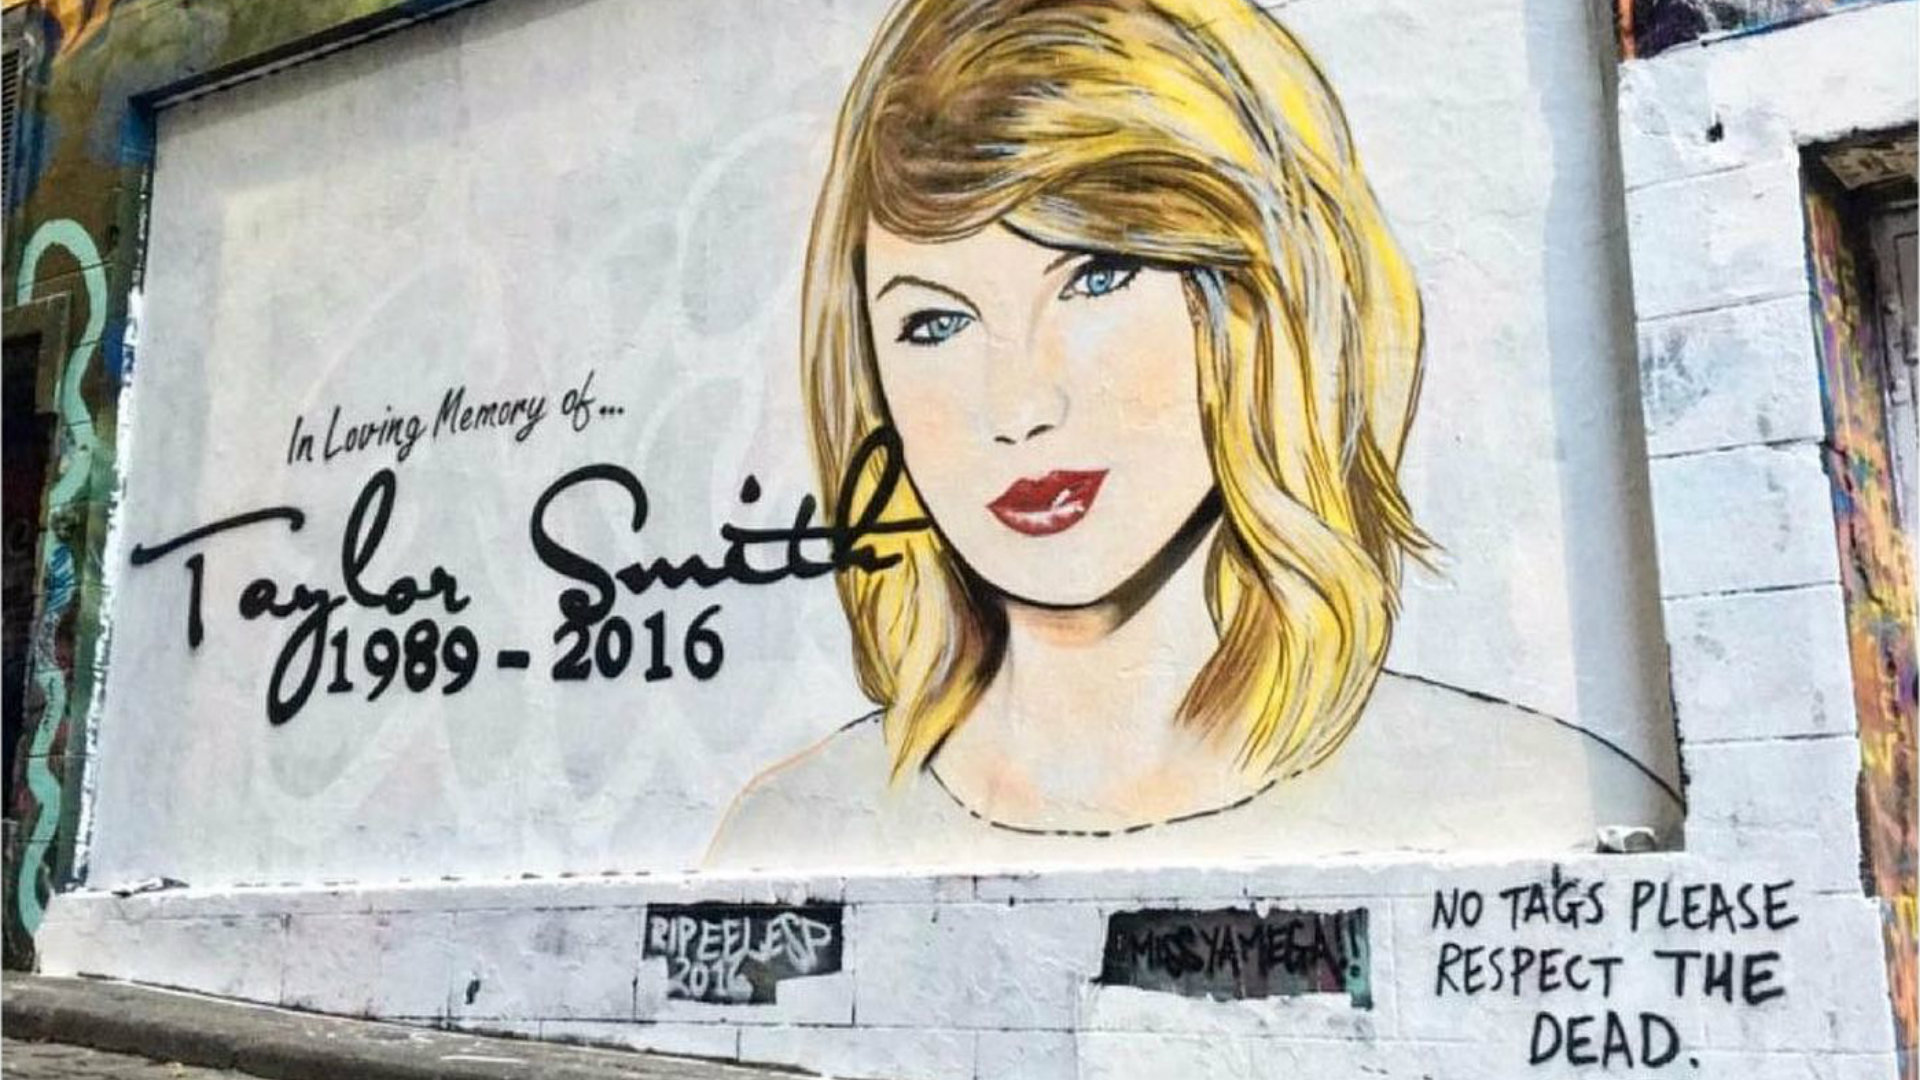 Taylor Swift mural in Melbourne